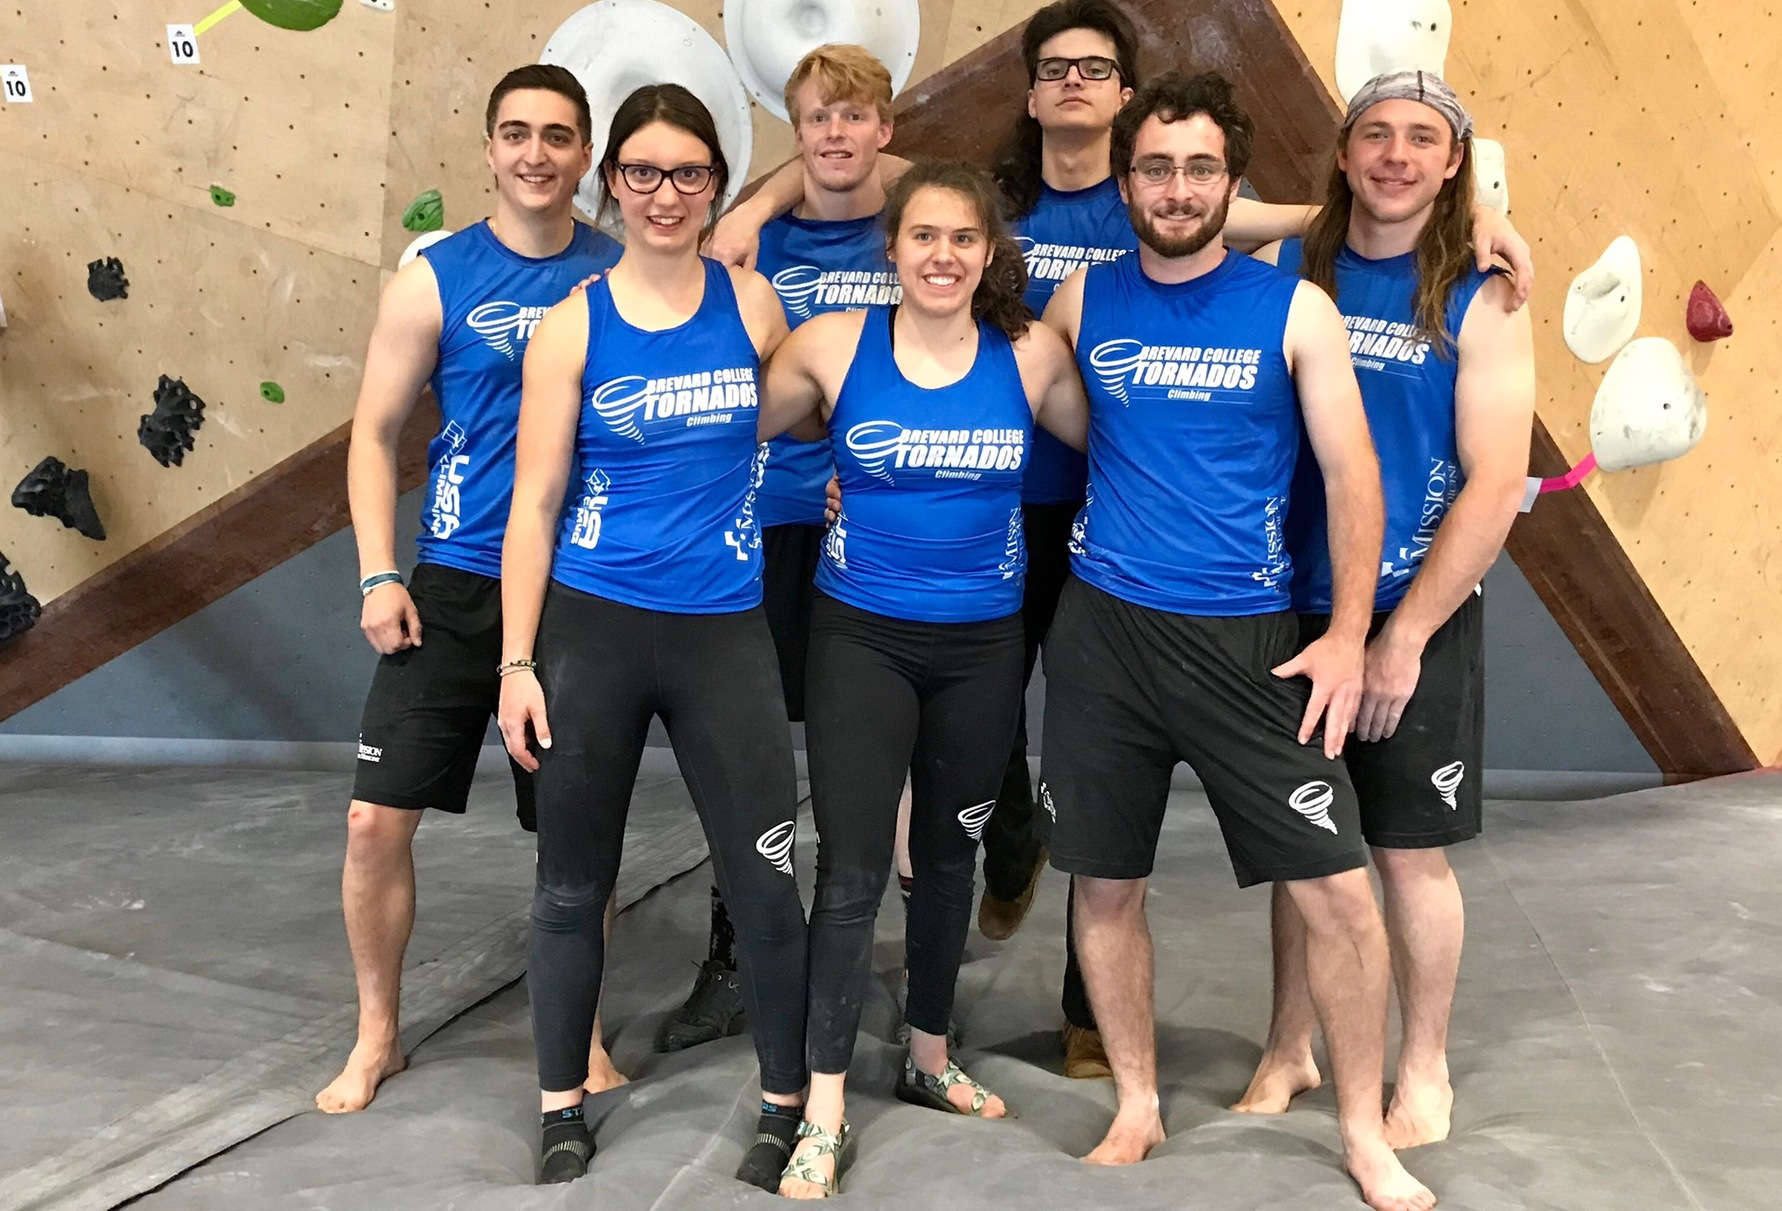 Altman Qualifies for Nationals, Brevard College Places Sixth at USA Climbing Regional Championships